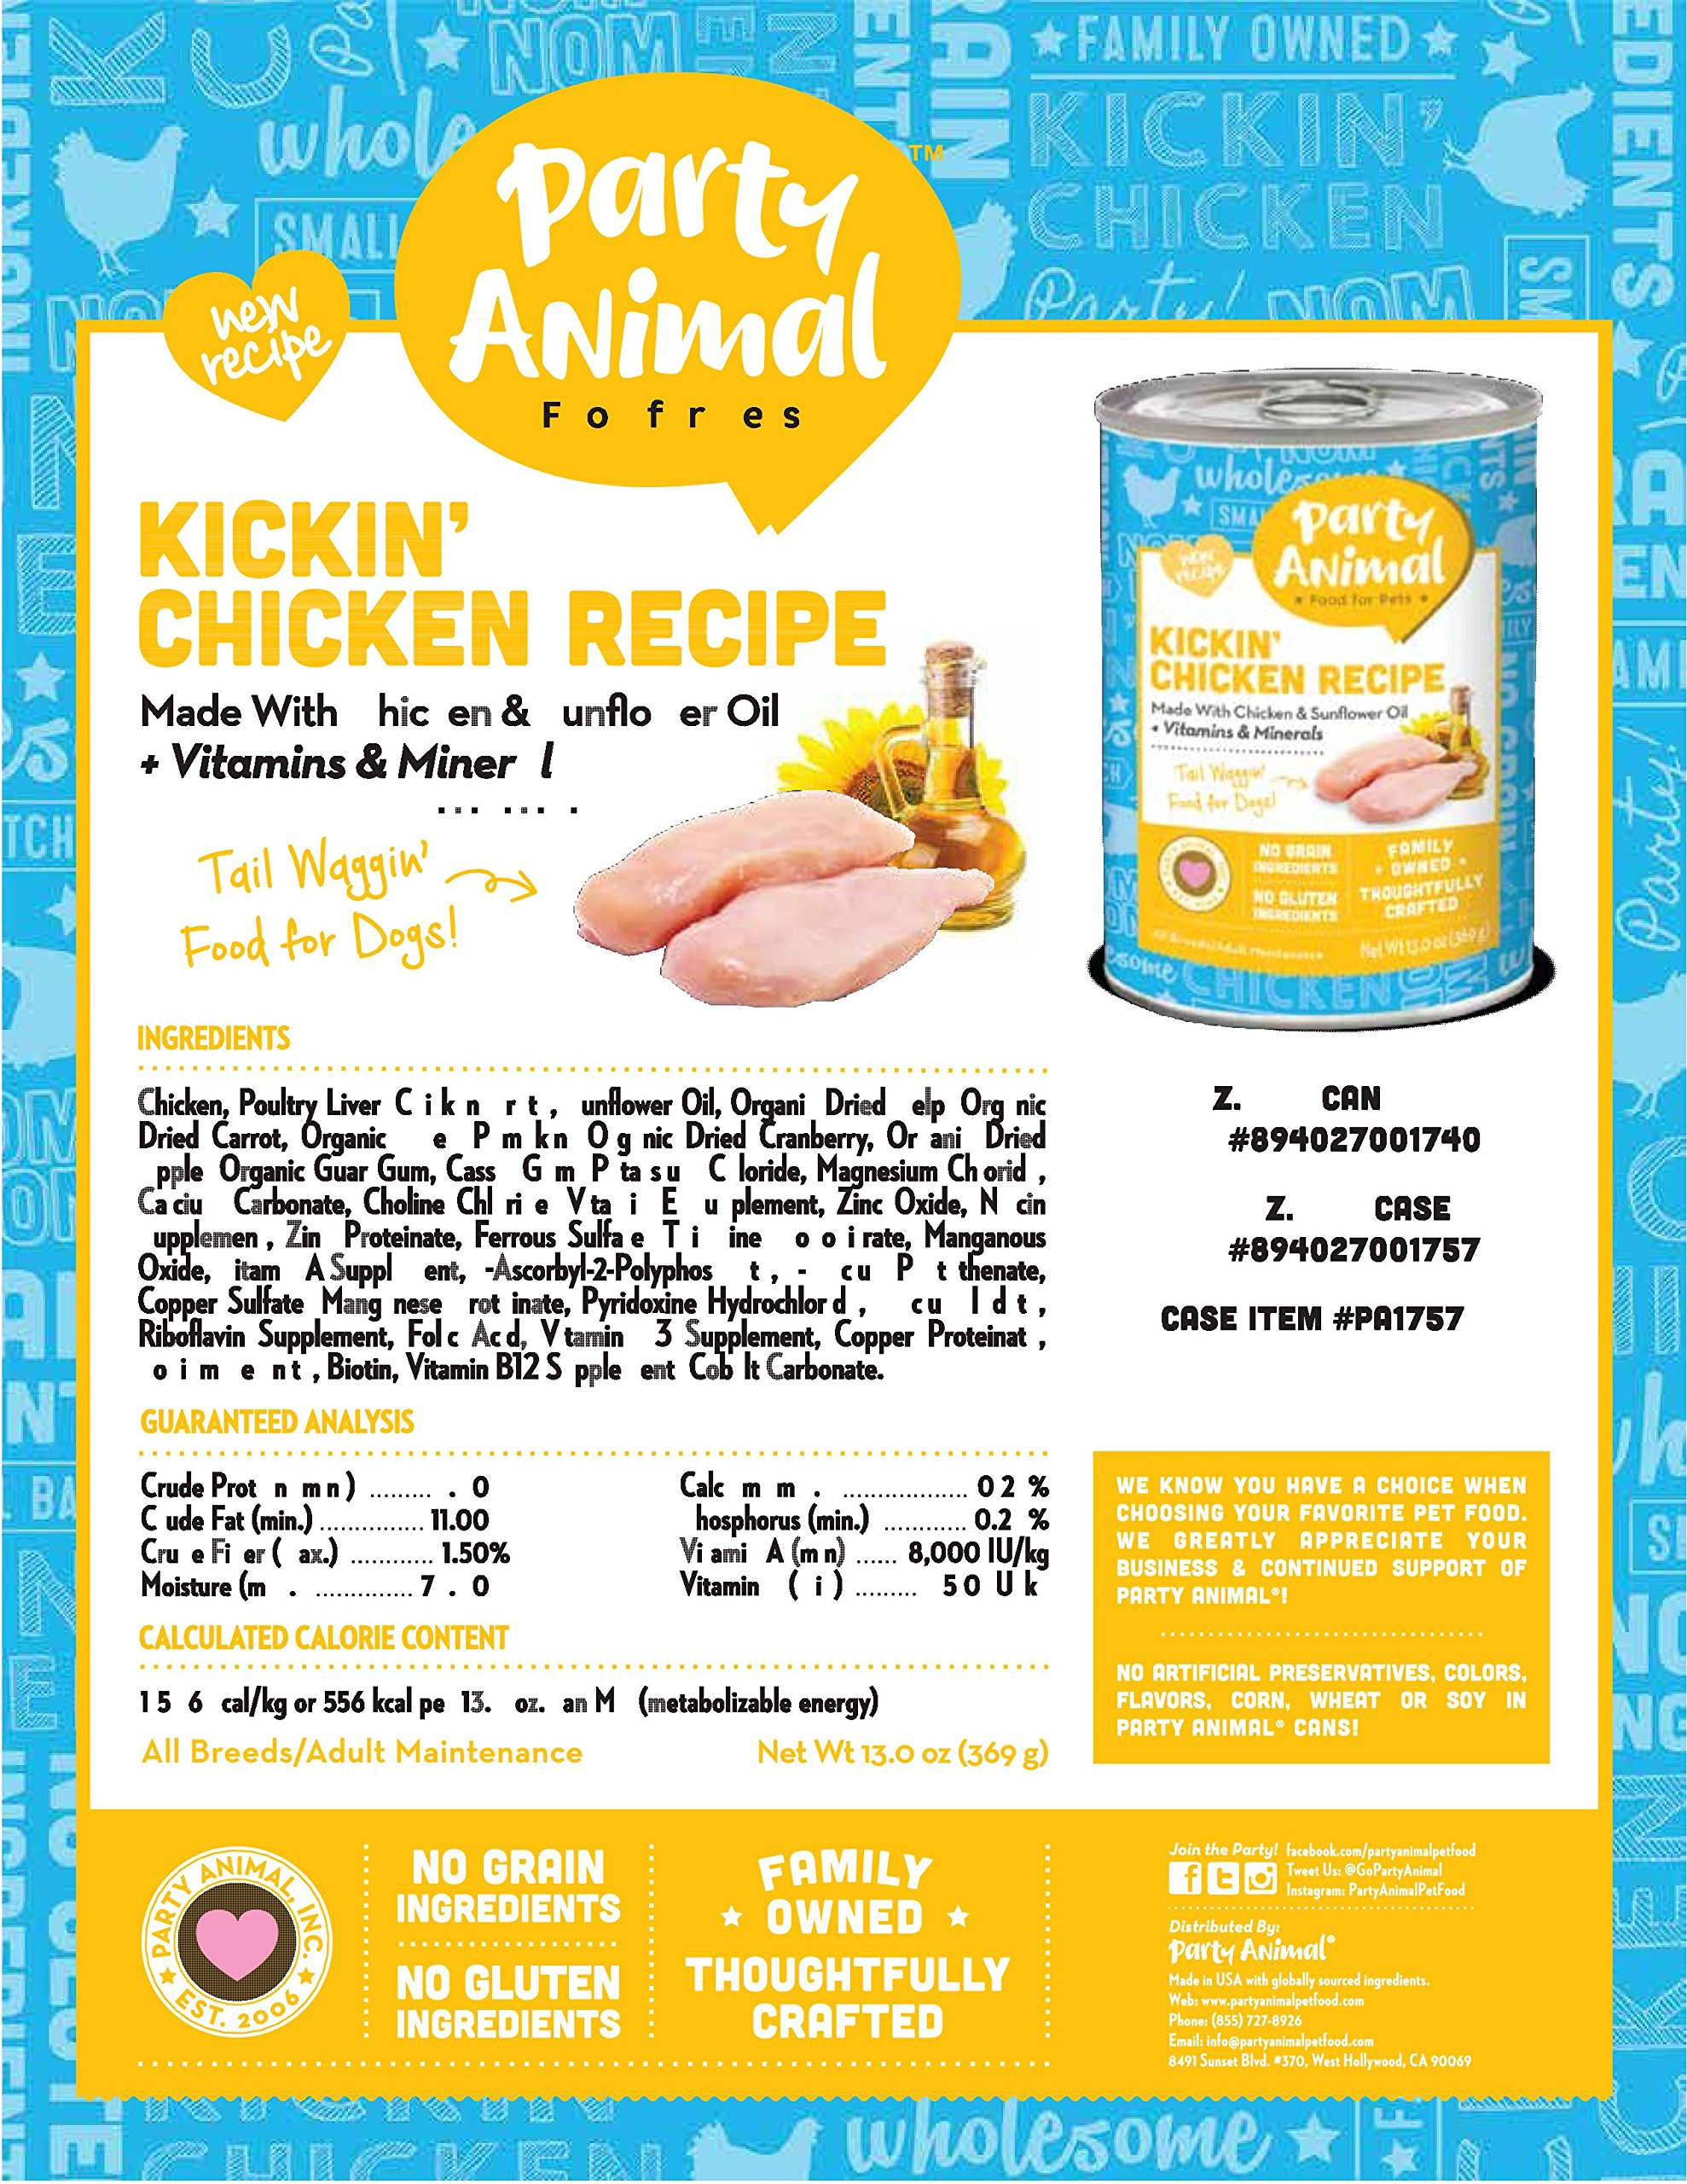 Party Animal DOG FOOD Pack of 12 13oz cans (KICKIN CHICKEN) Gluten free Grain Free